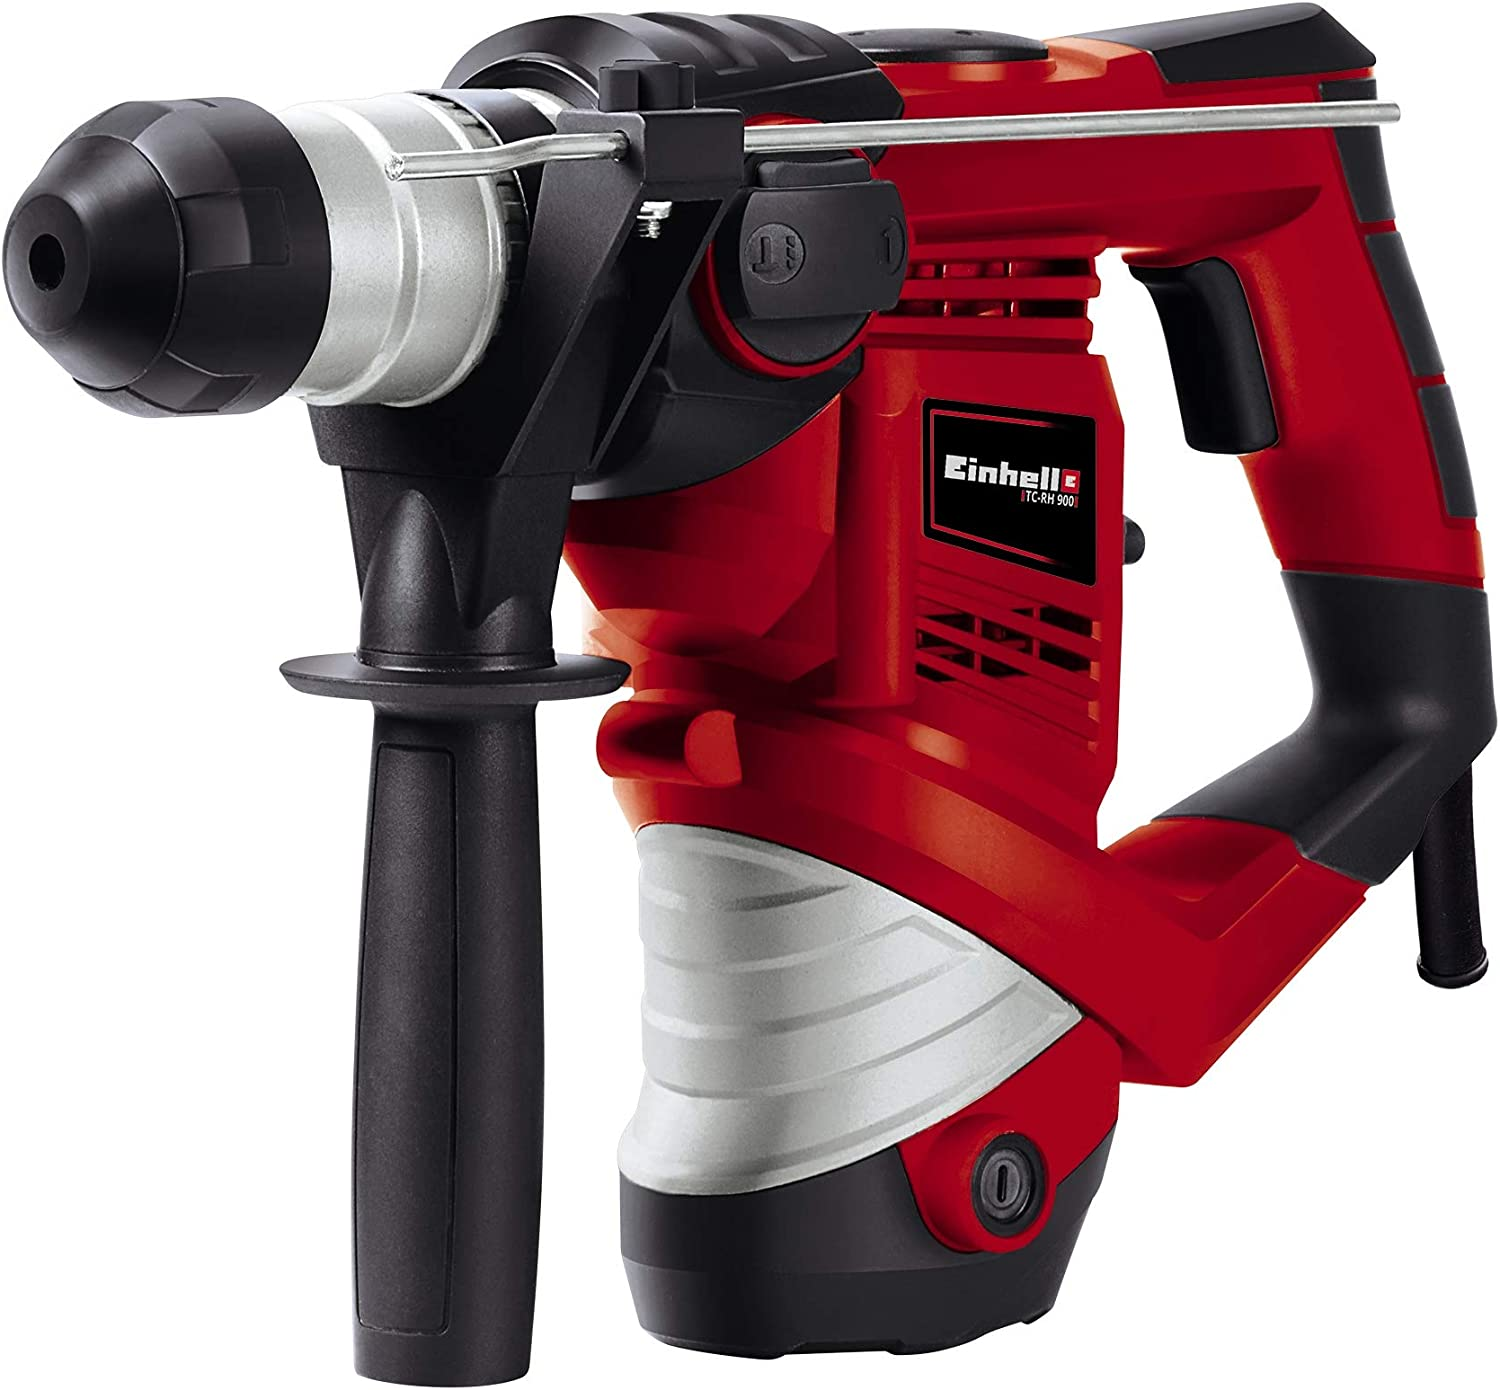 Einhell TC-RH 900 Martillo perforador rotomartillo